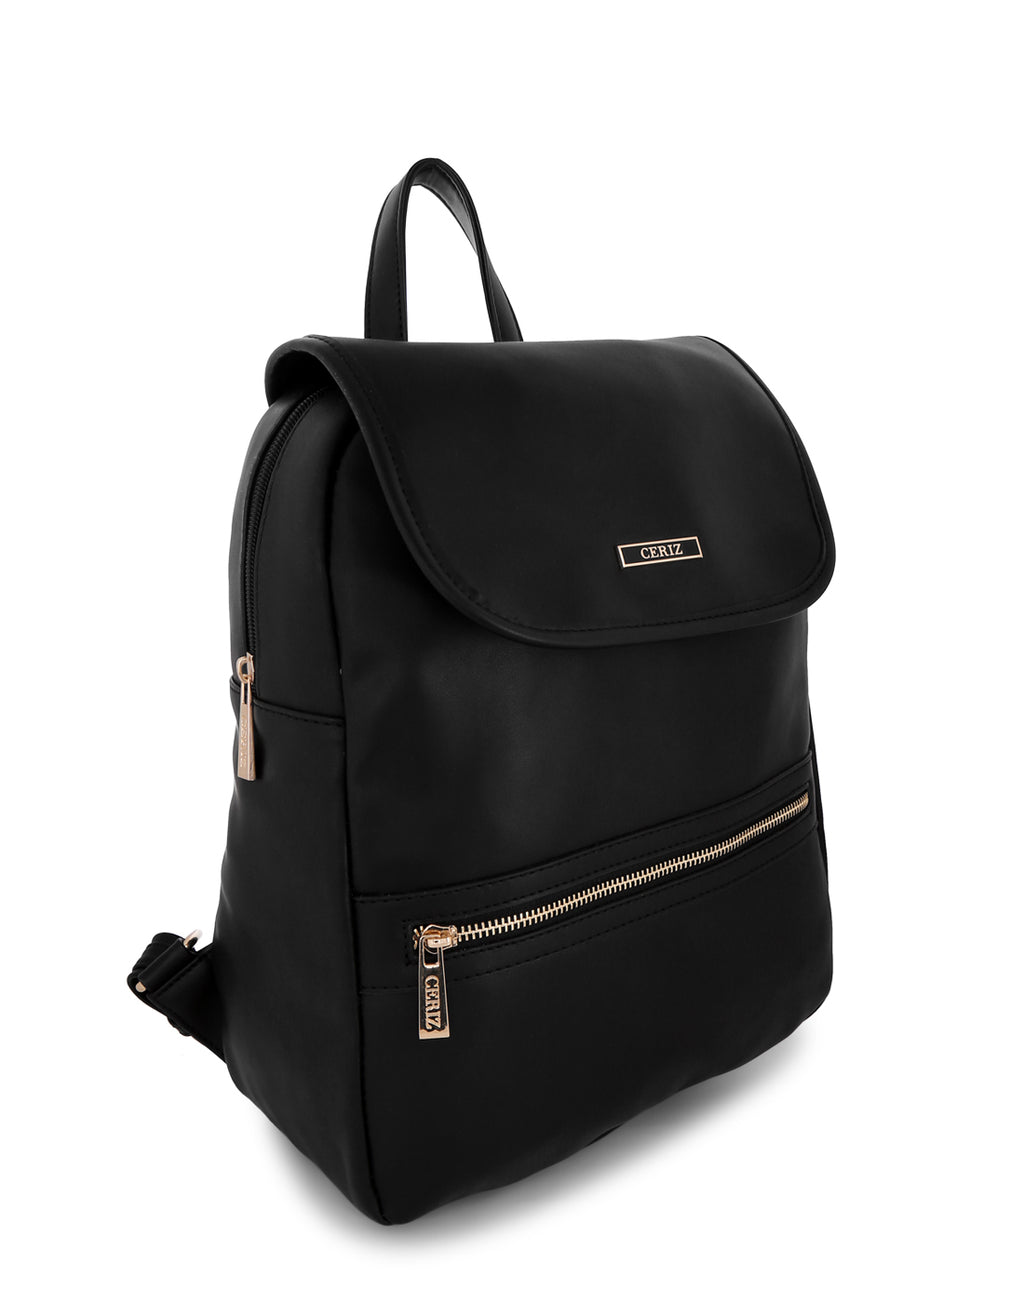 Parthenia Chic Black Backpack